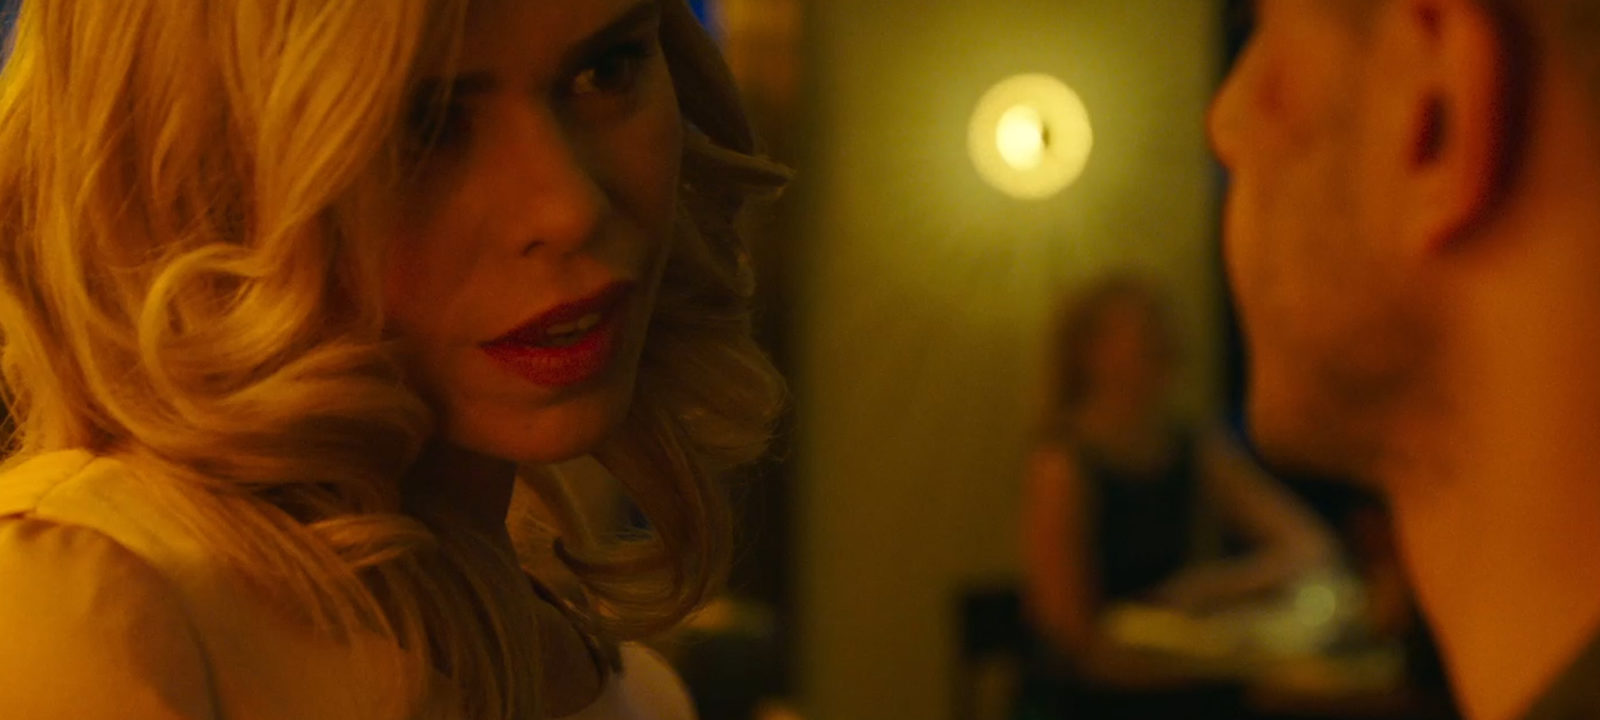 Watch Billie Piper And Riz Ahmed Get Down And Dirty In New Film City Of Tiny Lights Anglophenia Bbc America